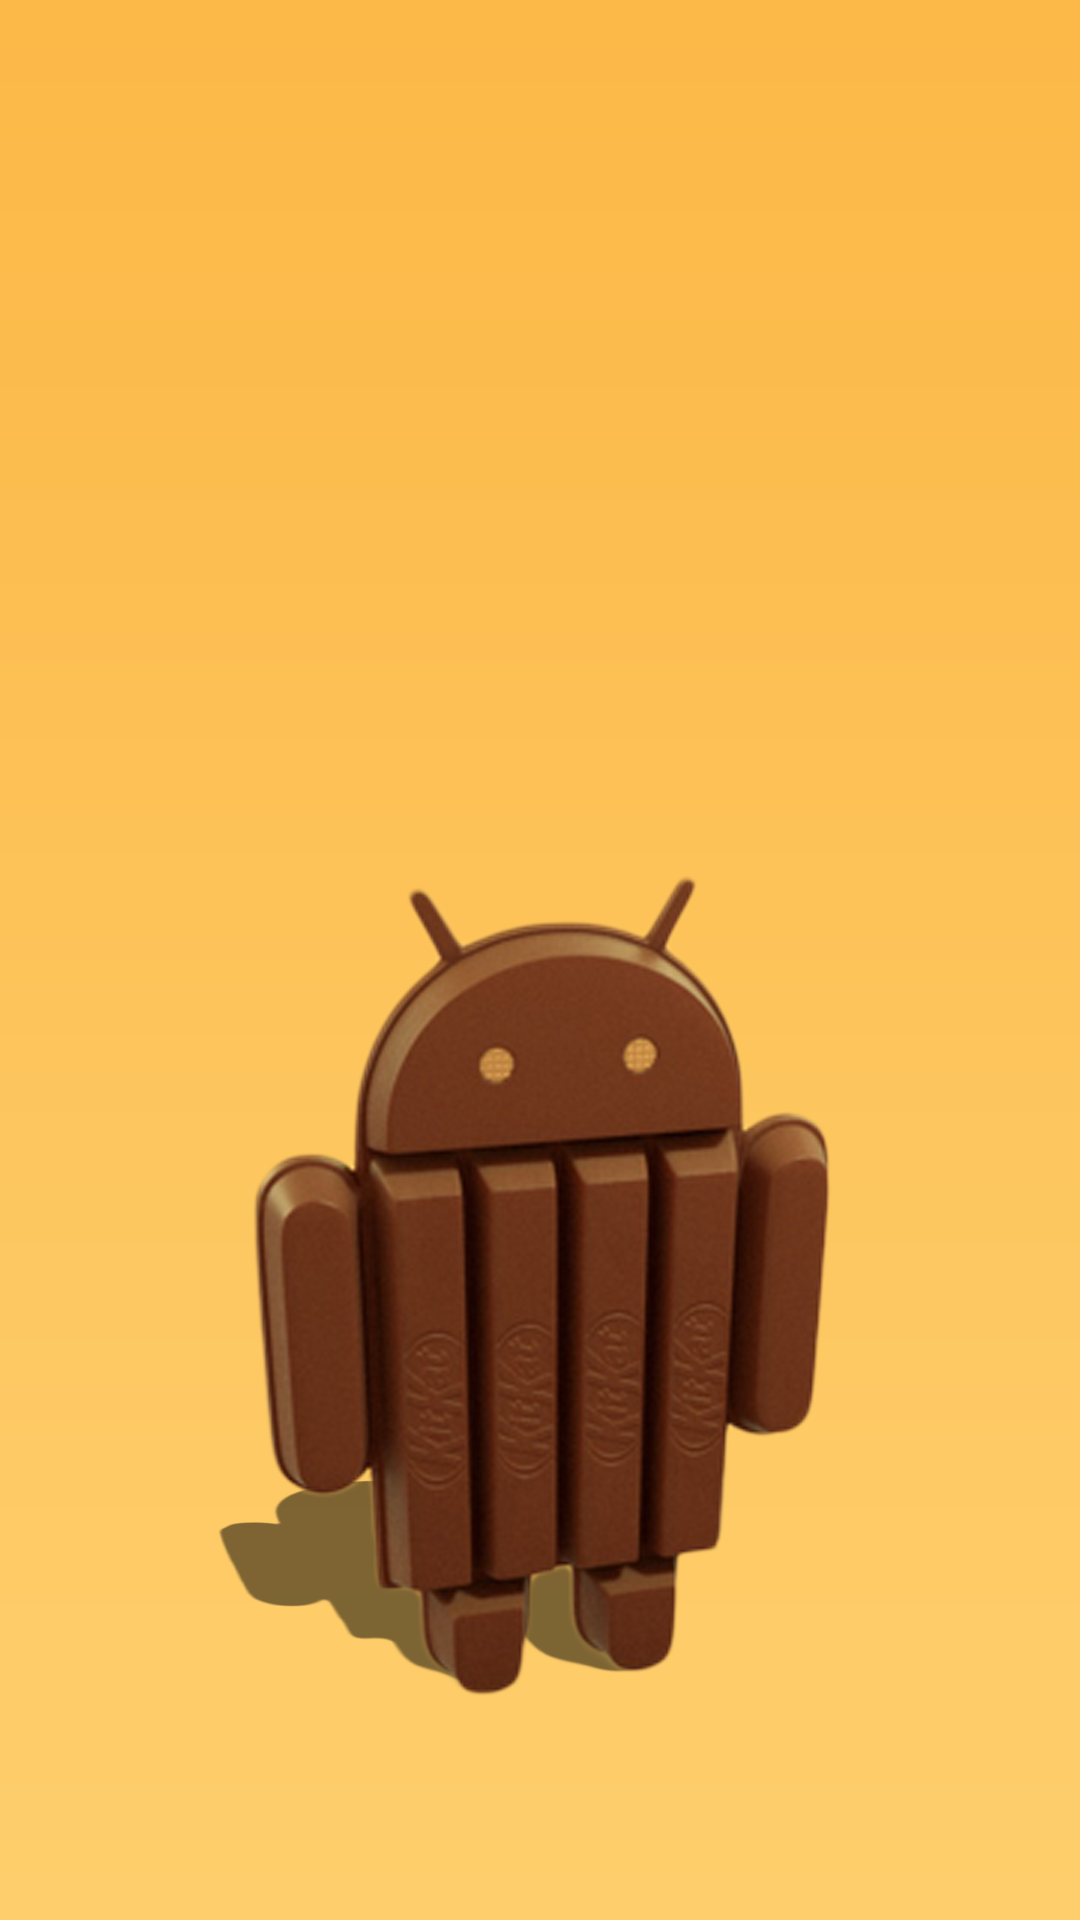 Android kitkat smartphone wallpapers hd getphotos android kitkat smartphone wallpapers hd voltagebd Images